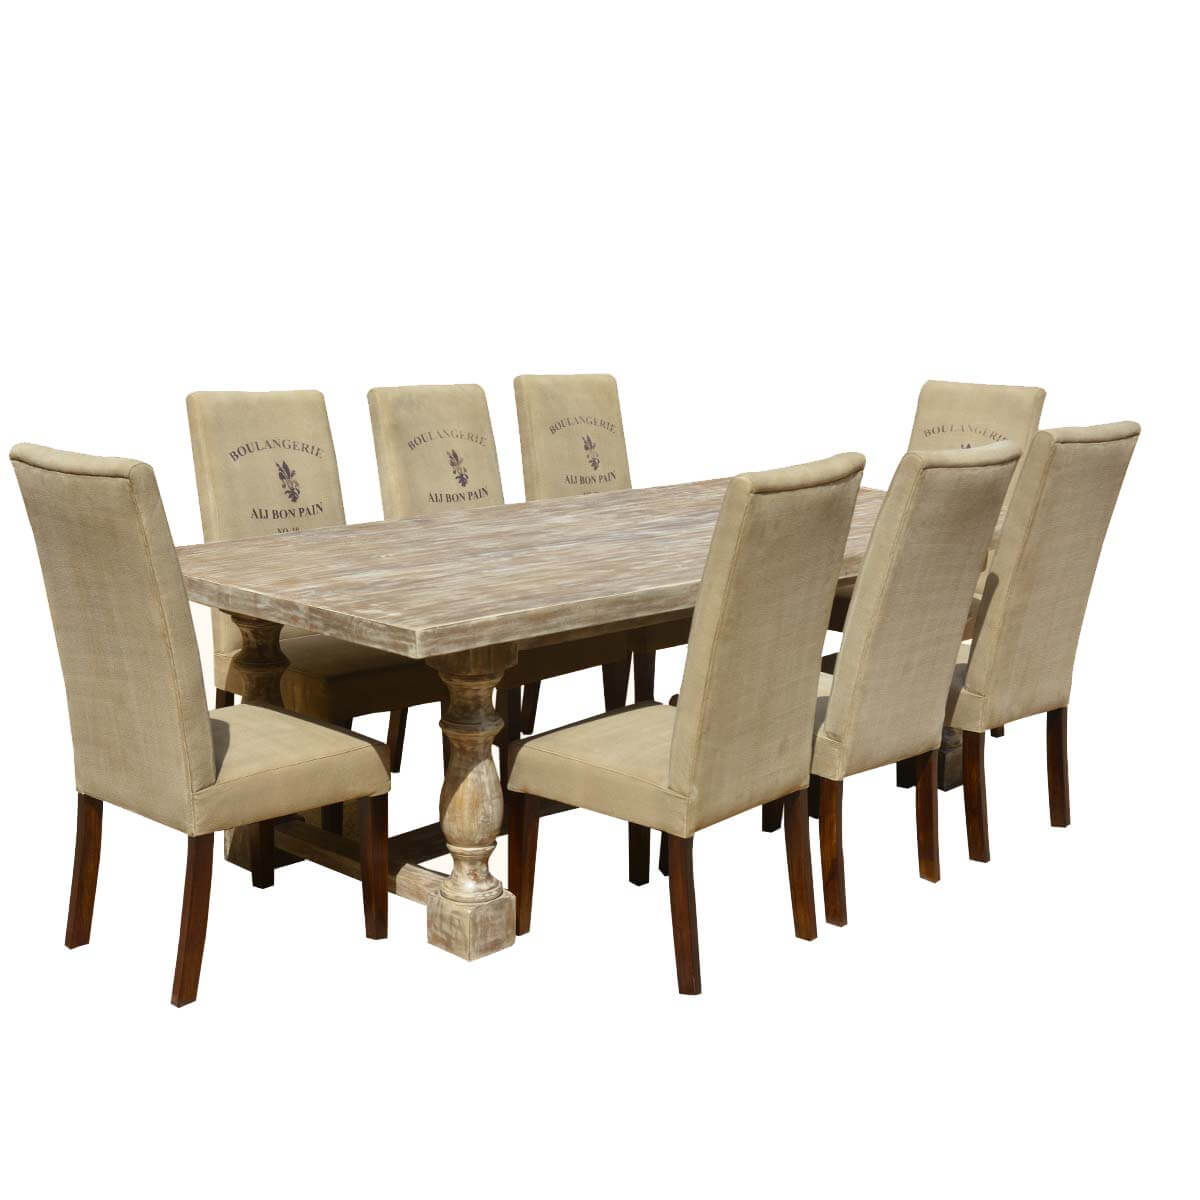 Italian mango wood white dining table cafe logo fabric for White and wood dining table and chairs